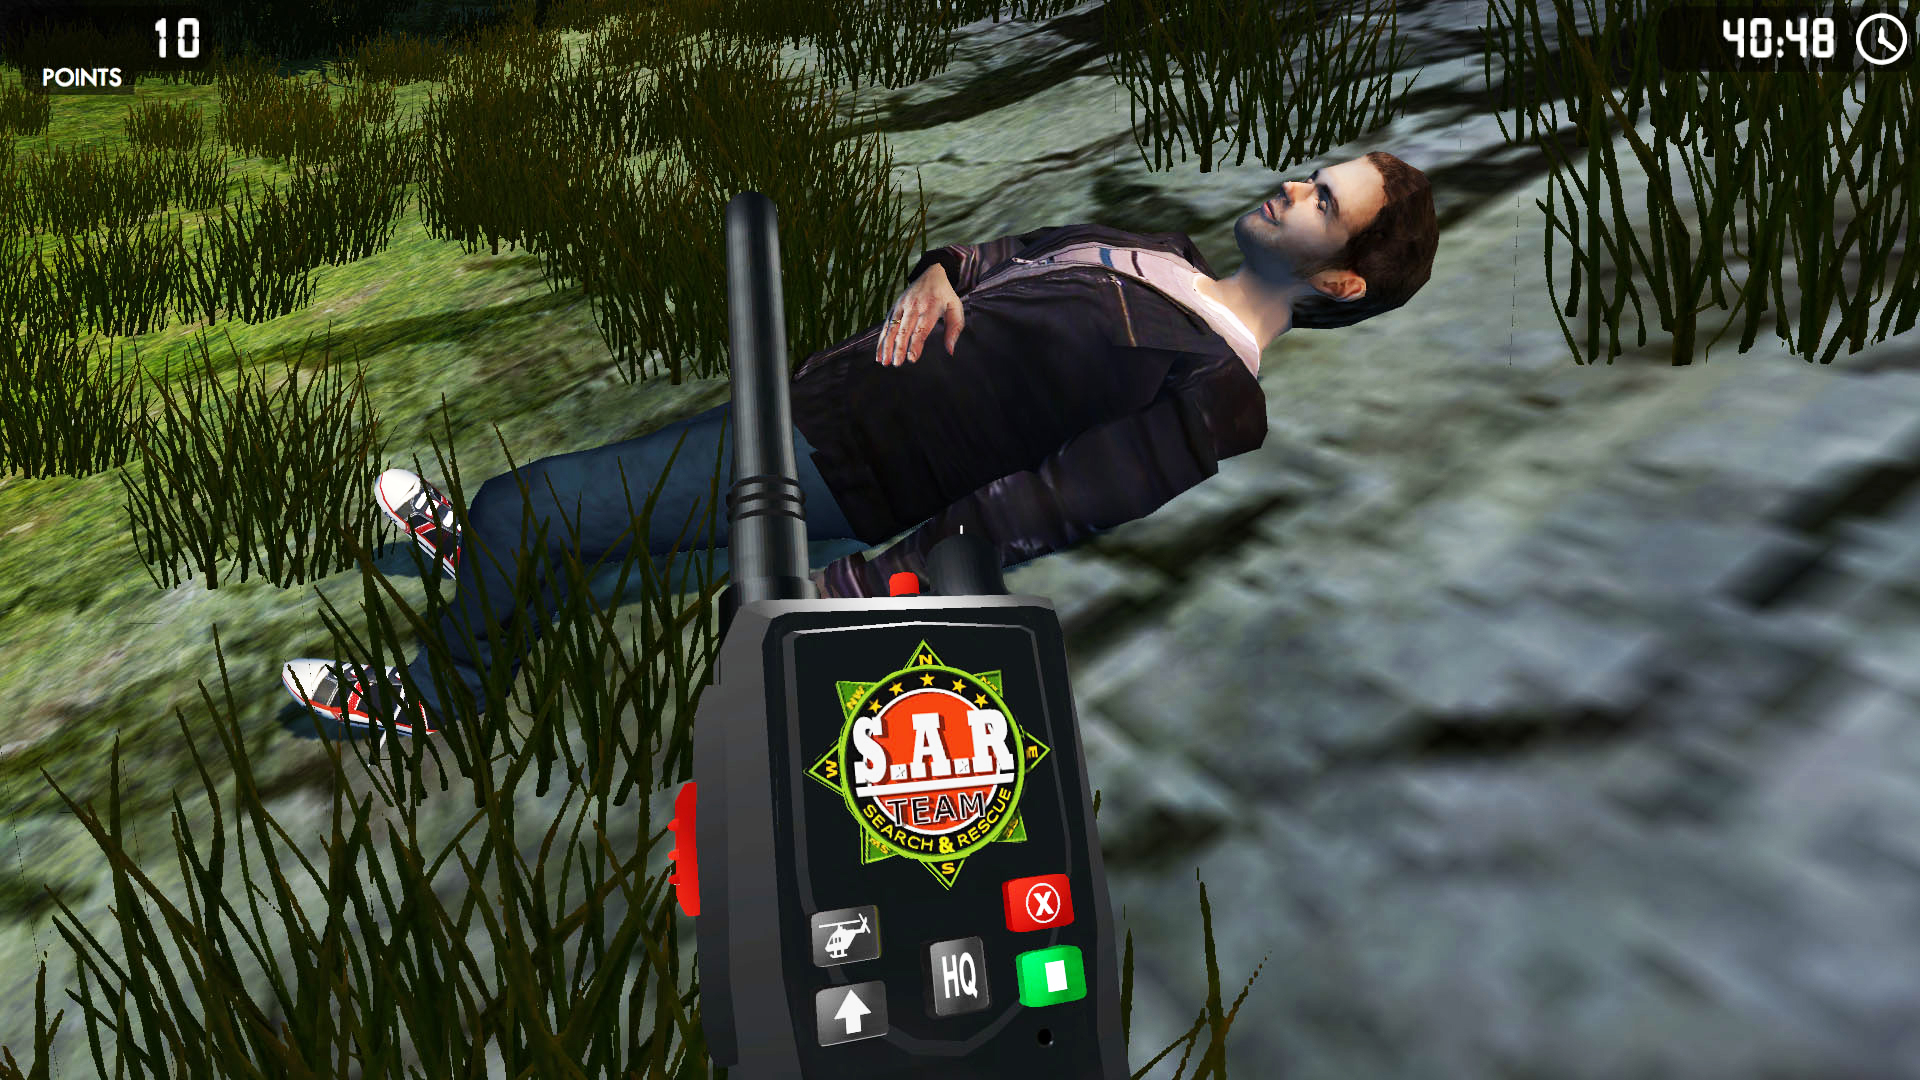 Best games likeRecovery Search & Rescue Simulation per platform